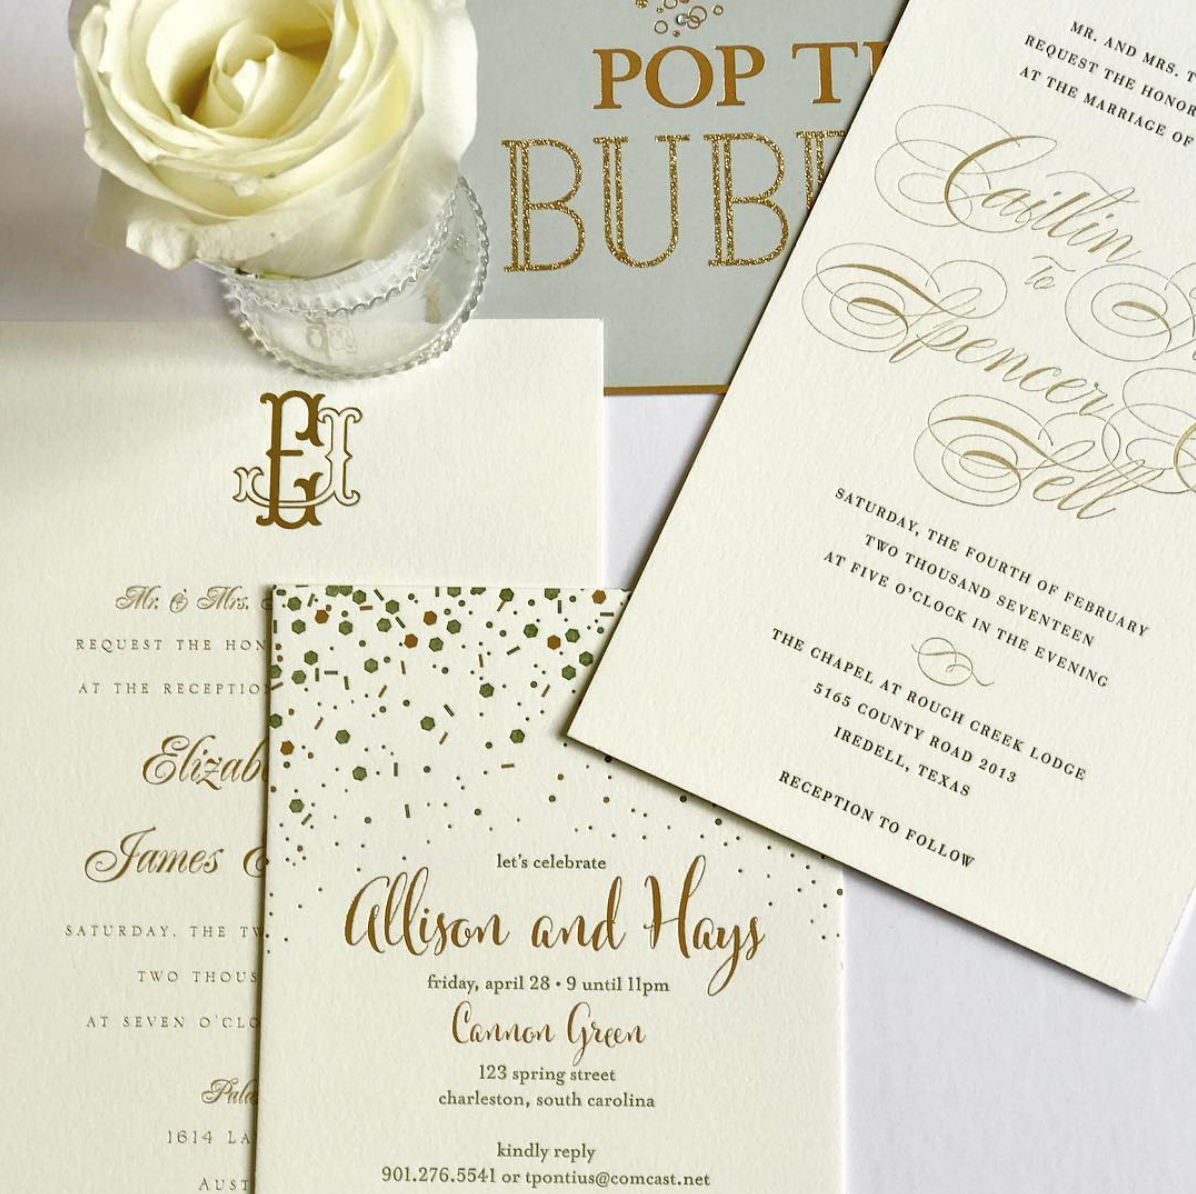 Invitations + Paper in Charlotte, NC - The Knot